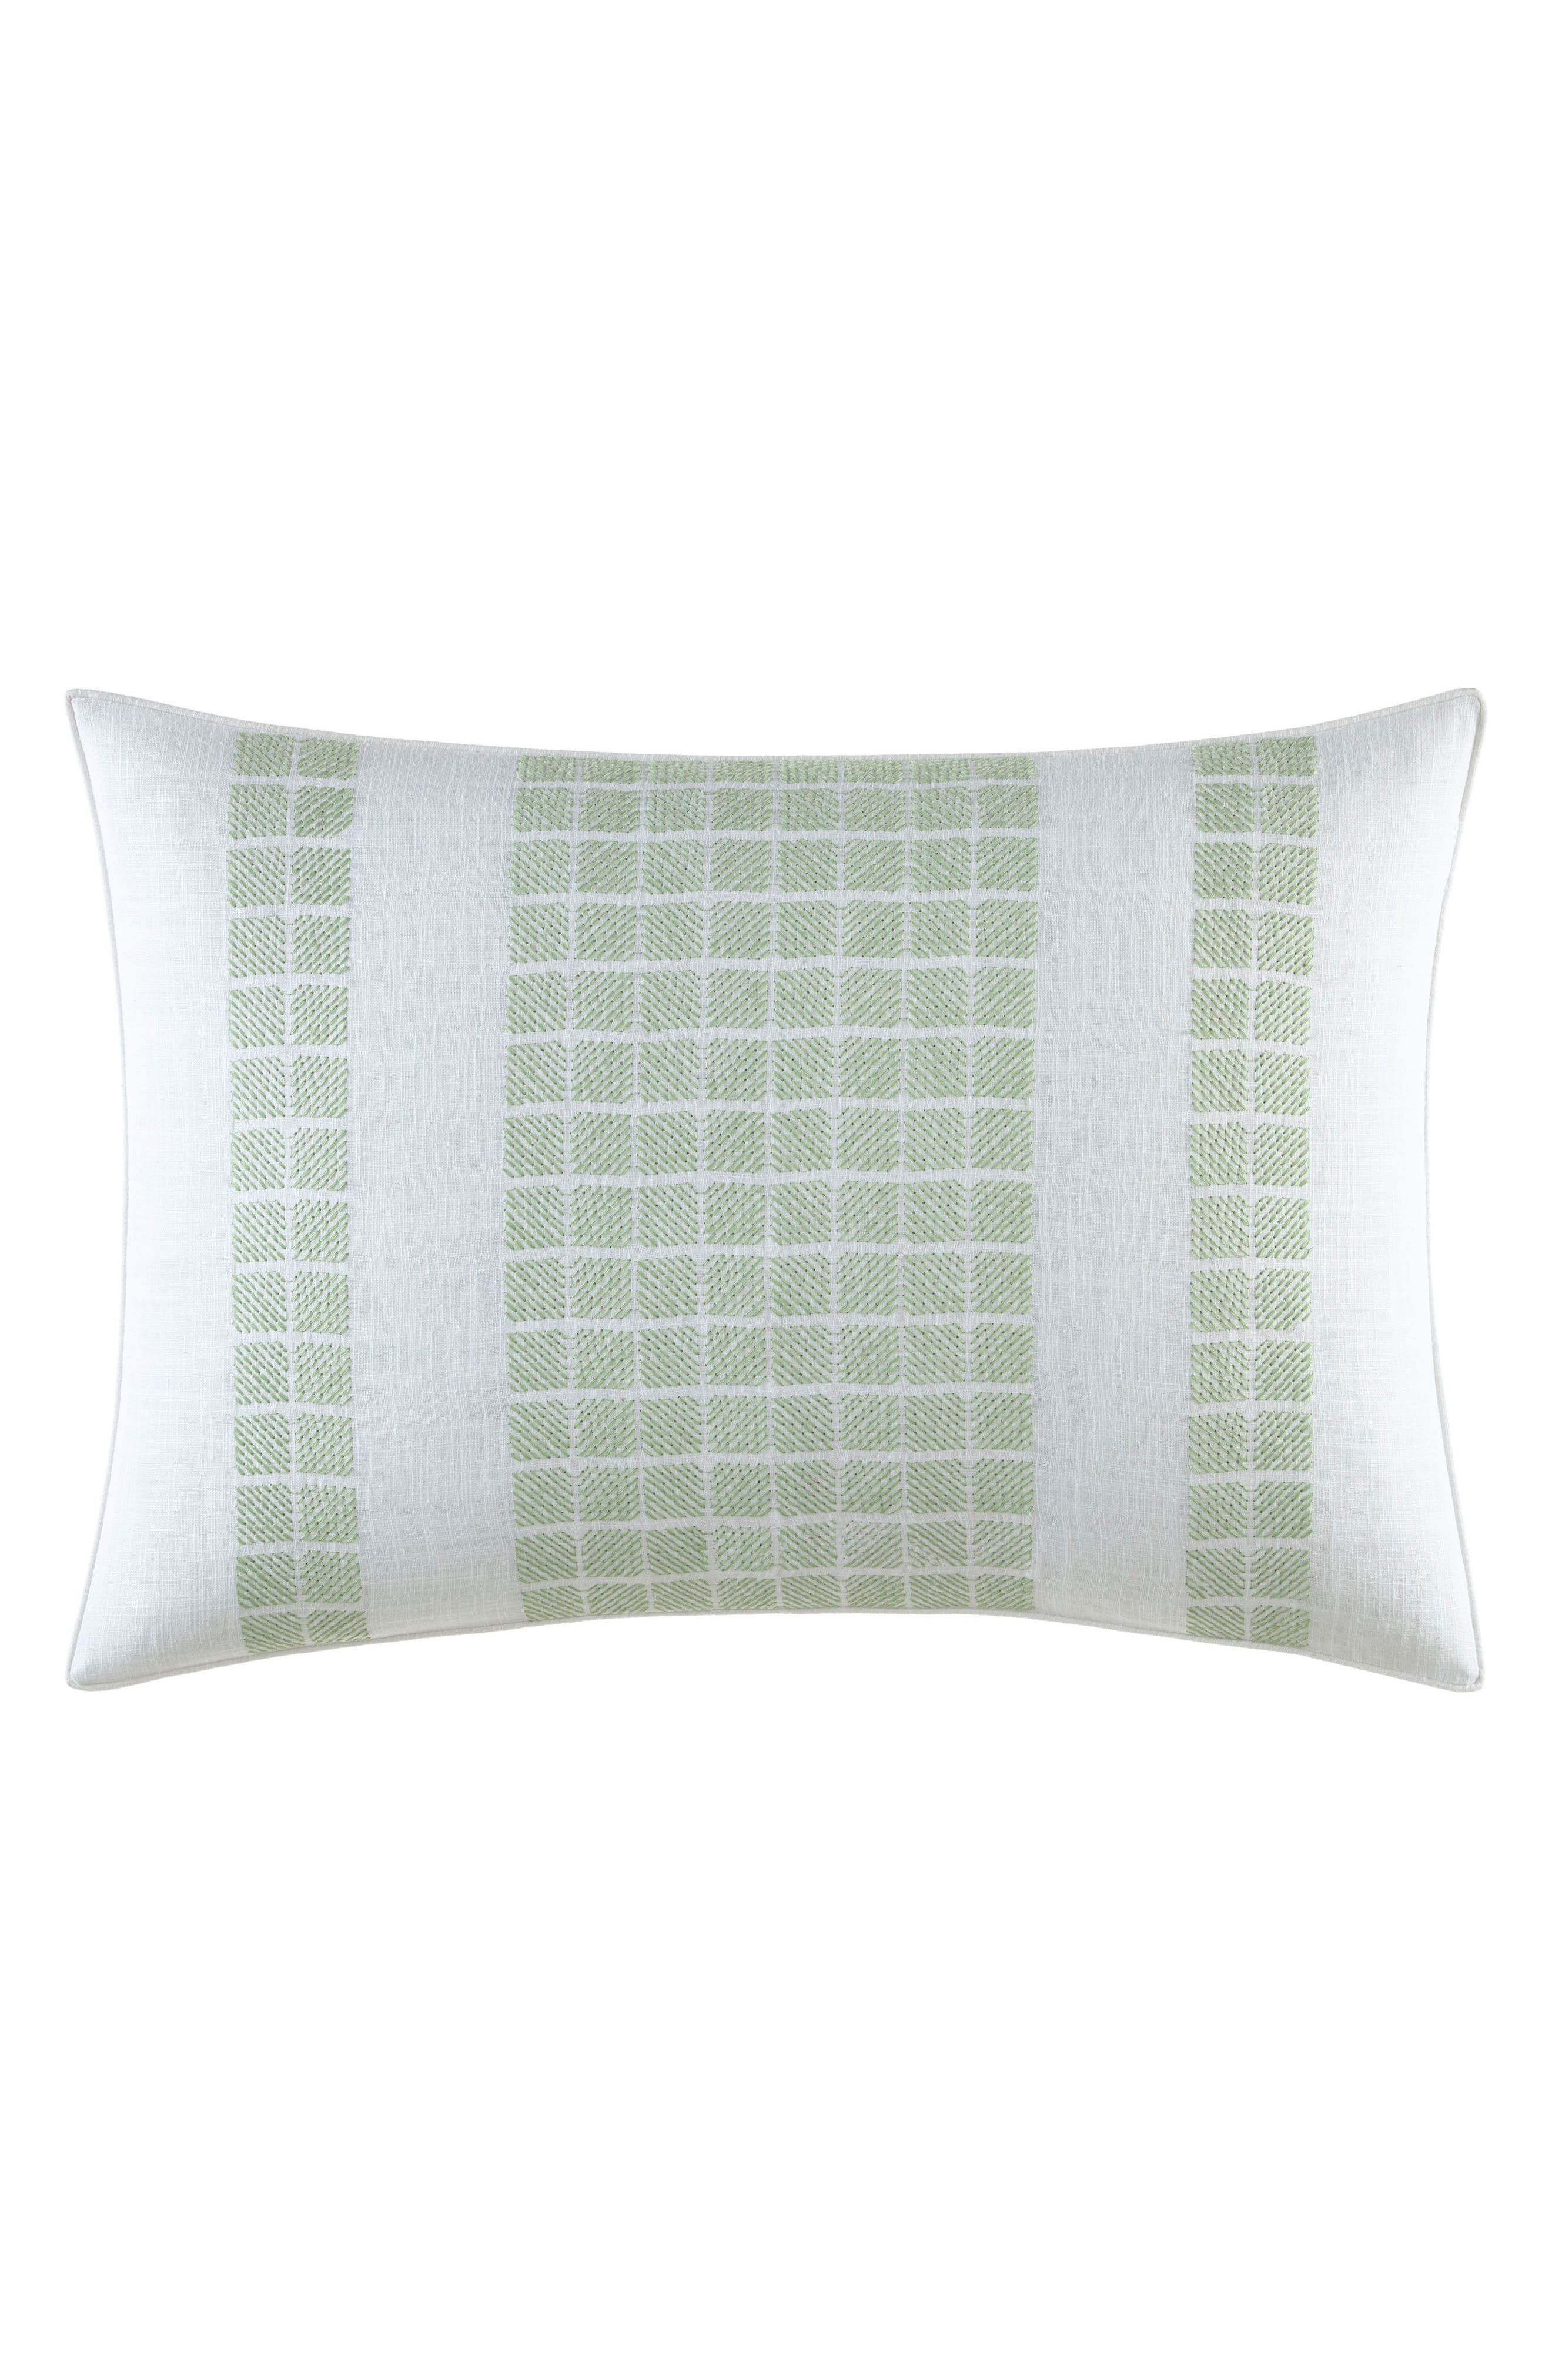 Norwich Embroidered Accent Pillow,                             Main thumbnail 1, color,                             LIGHT PASTEL GREEN